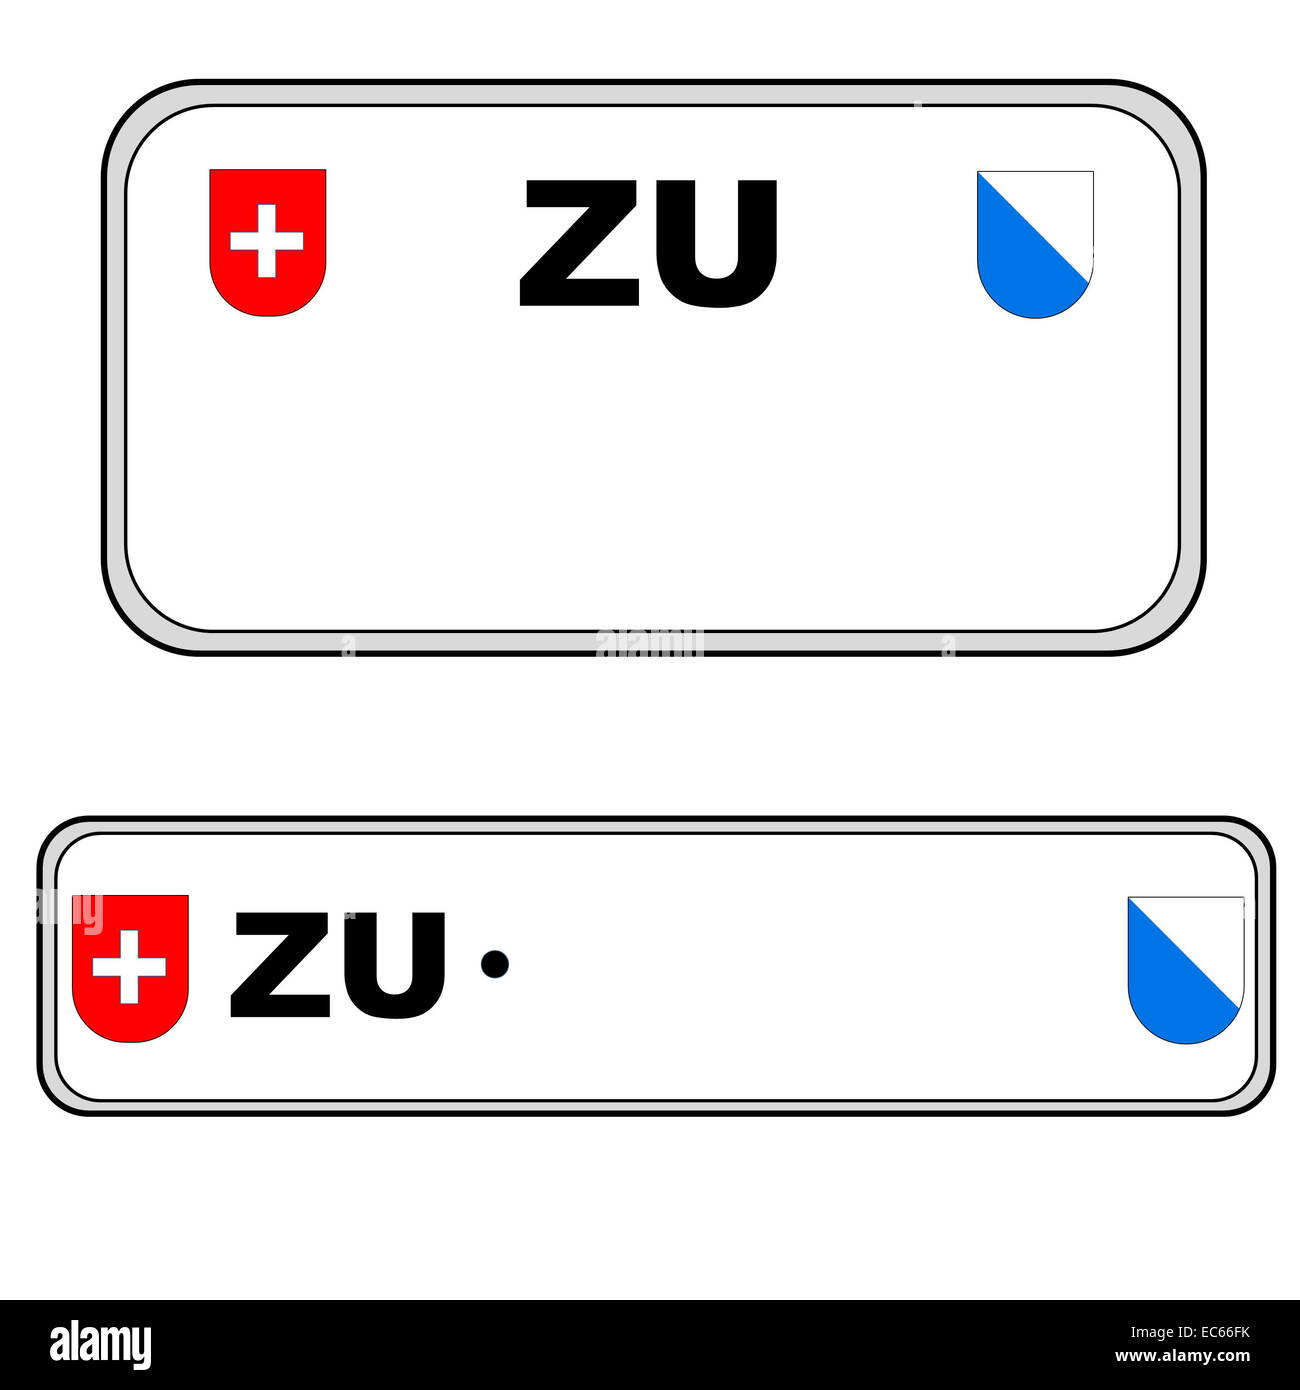 Zurich front and back plate numbers, Switzerland, in white background - Stock Image